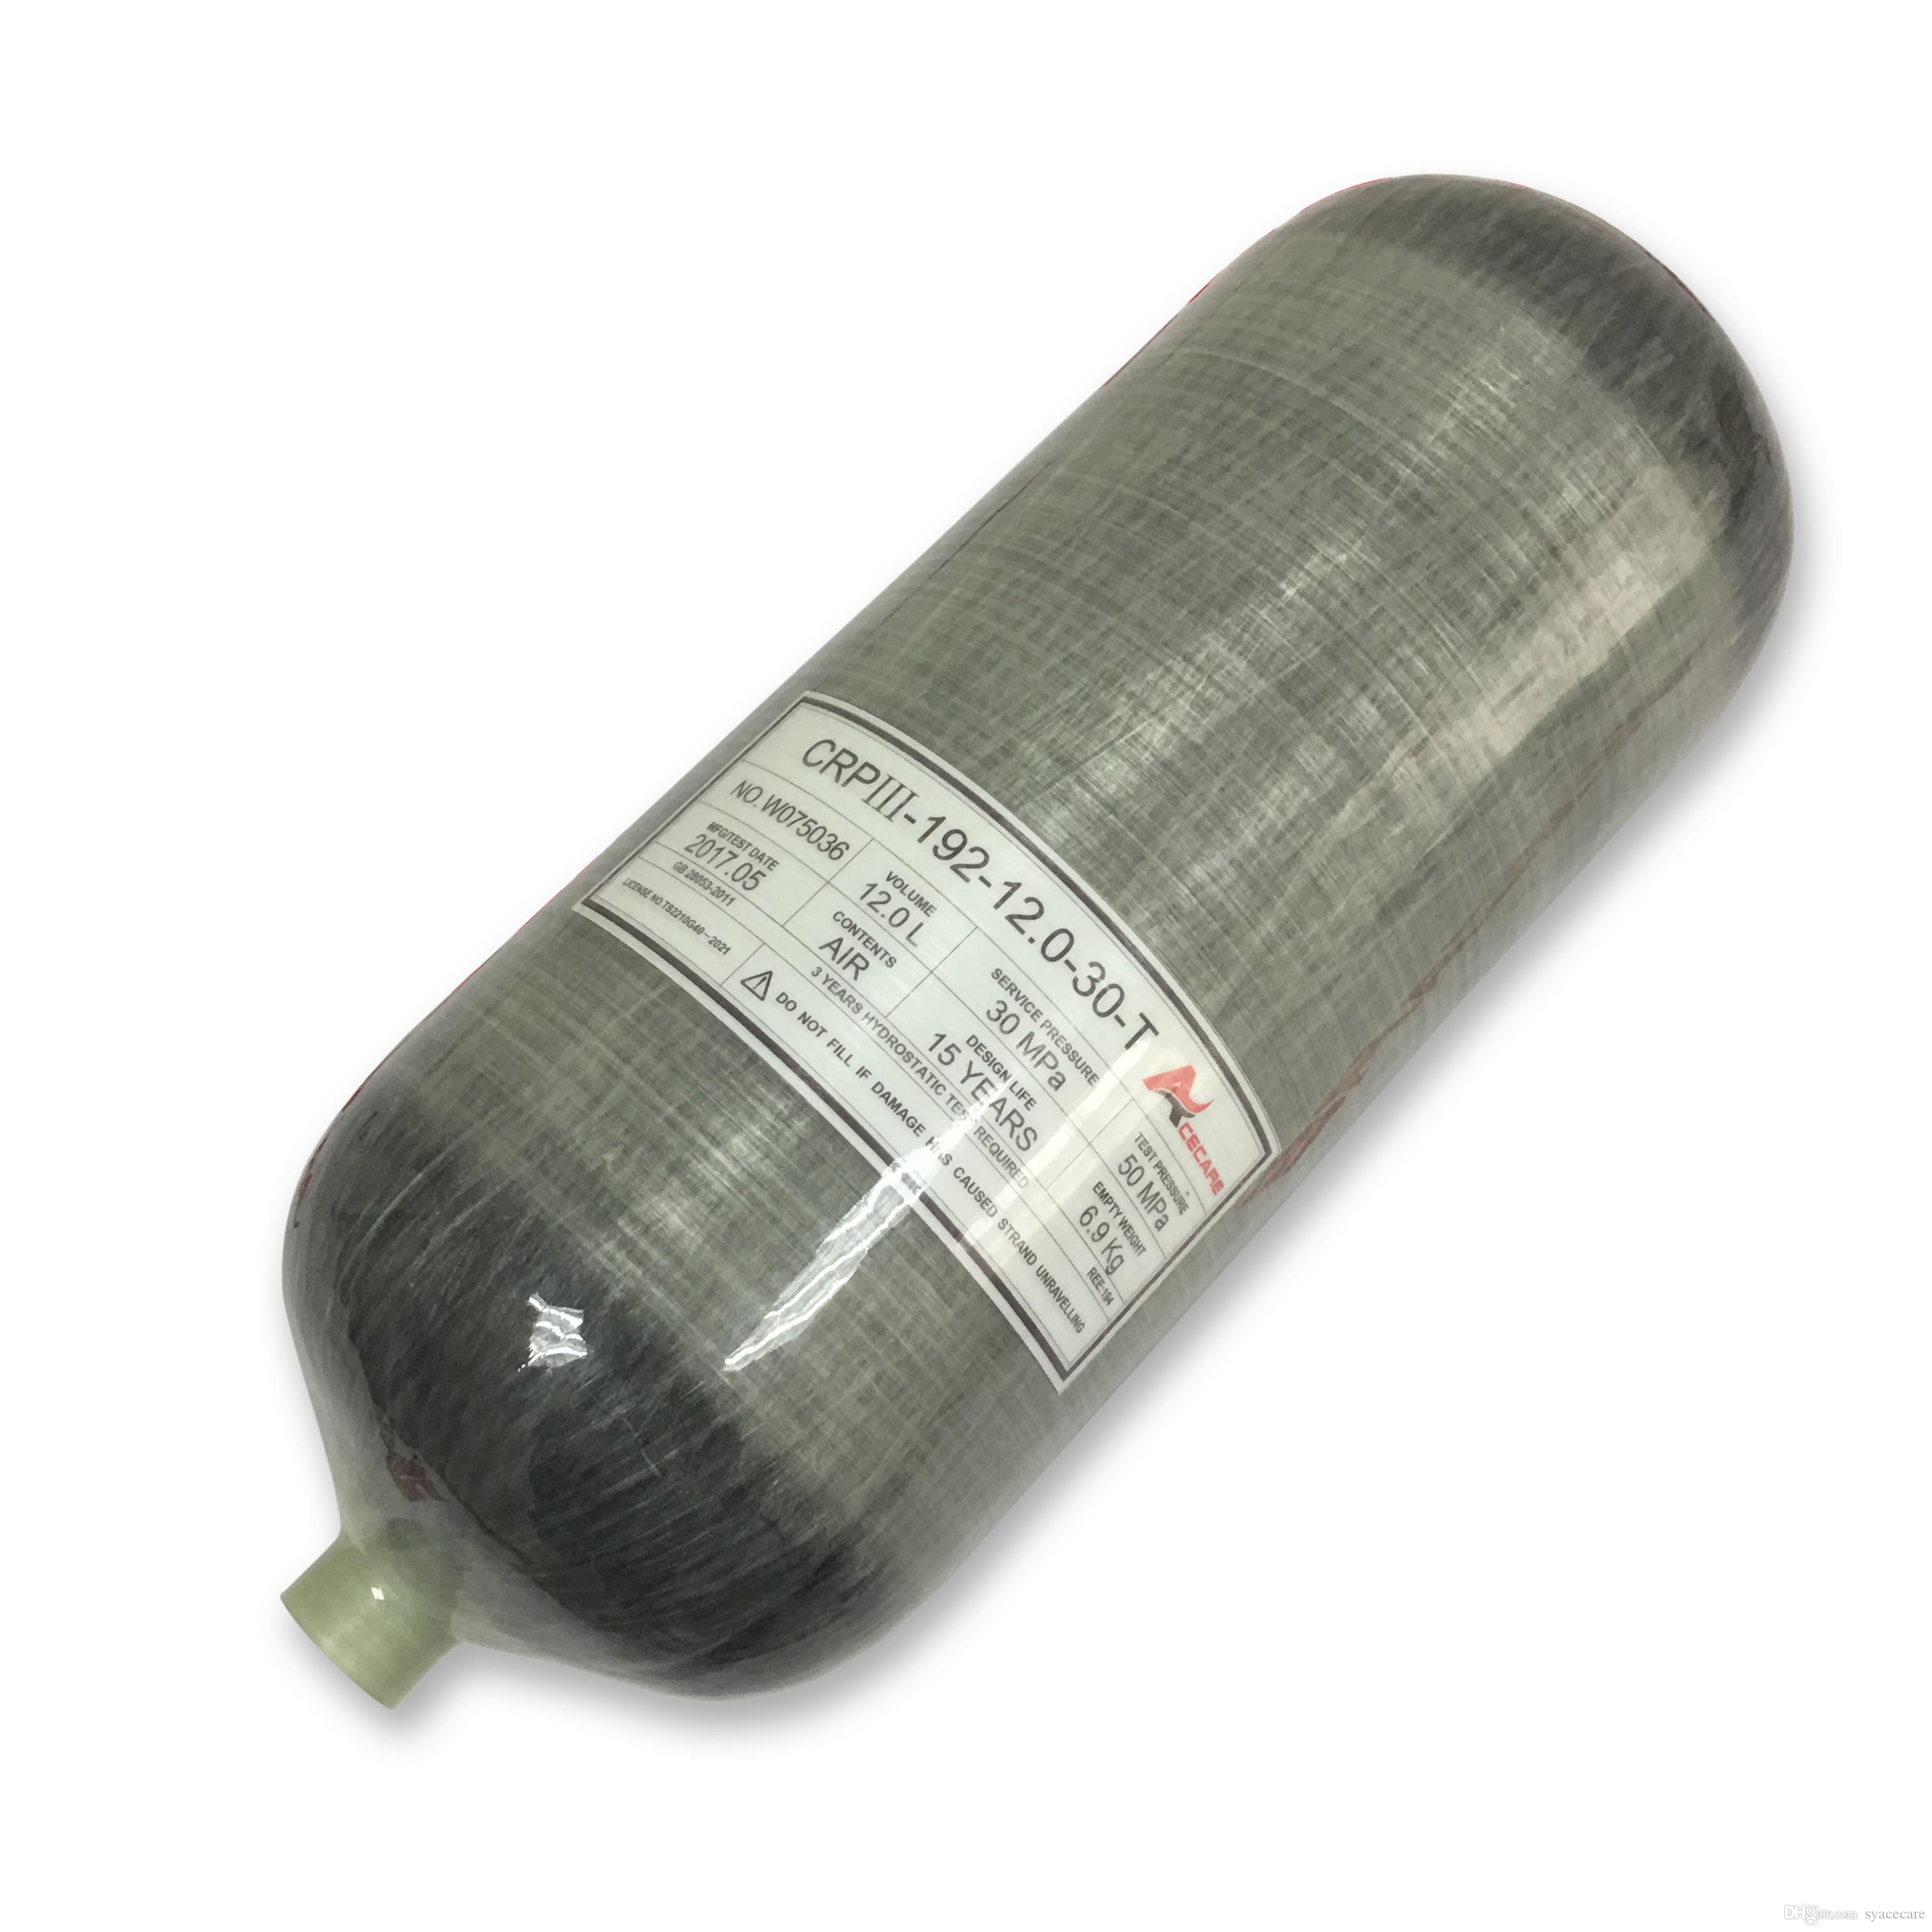 New arrivals 12L 30Mpa 4500psi carbon fiber gas cylinder SCUBA diving equipment for small paintball tank refilling